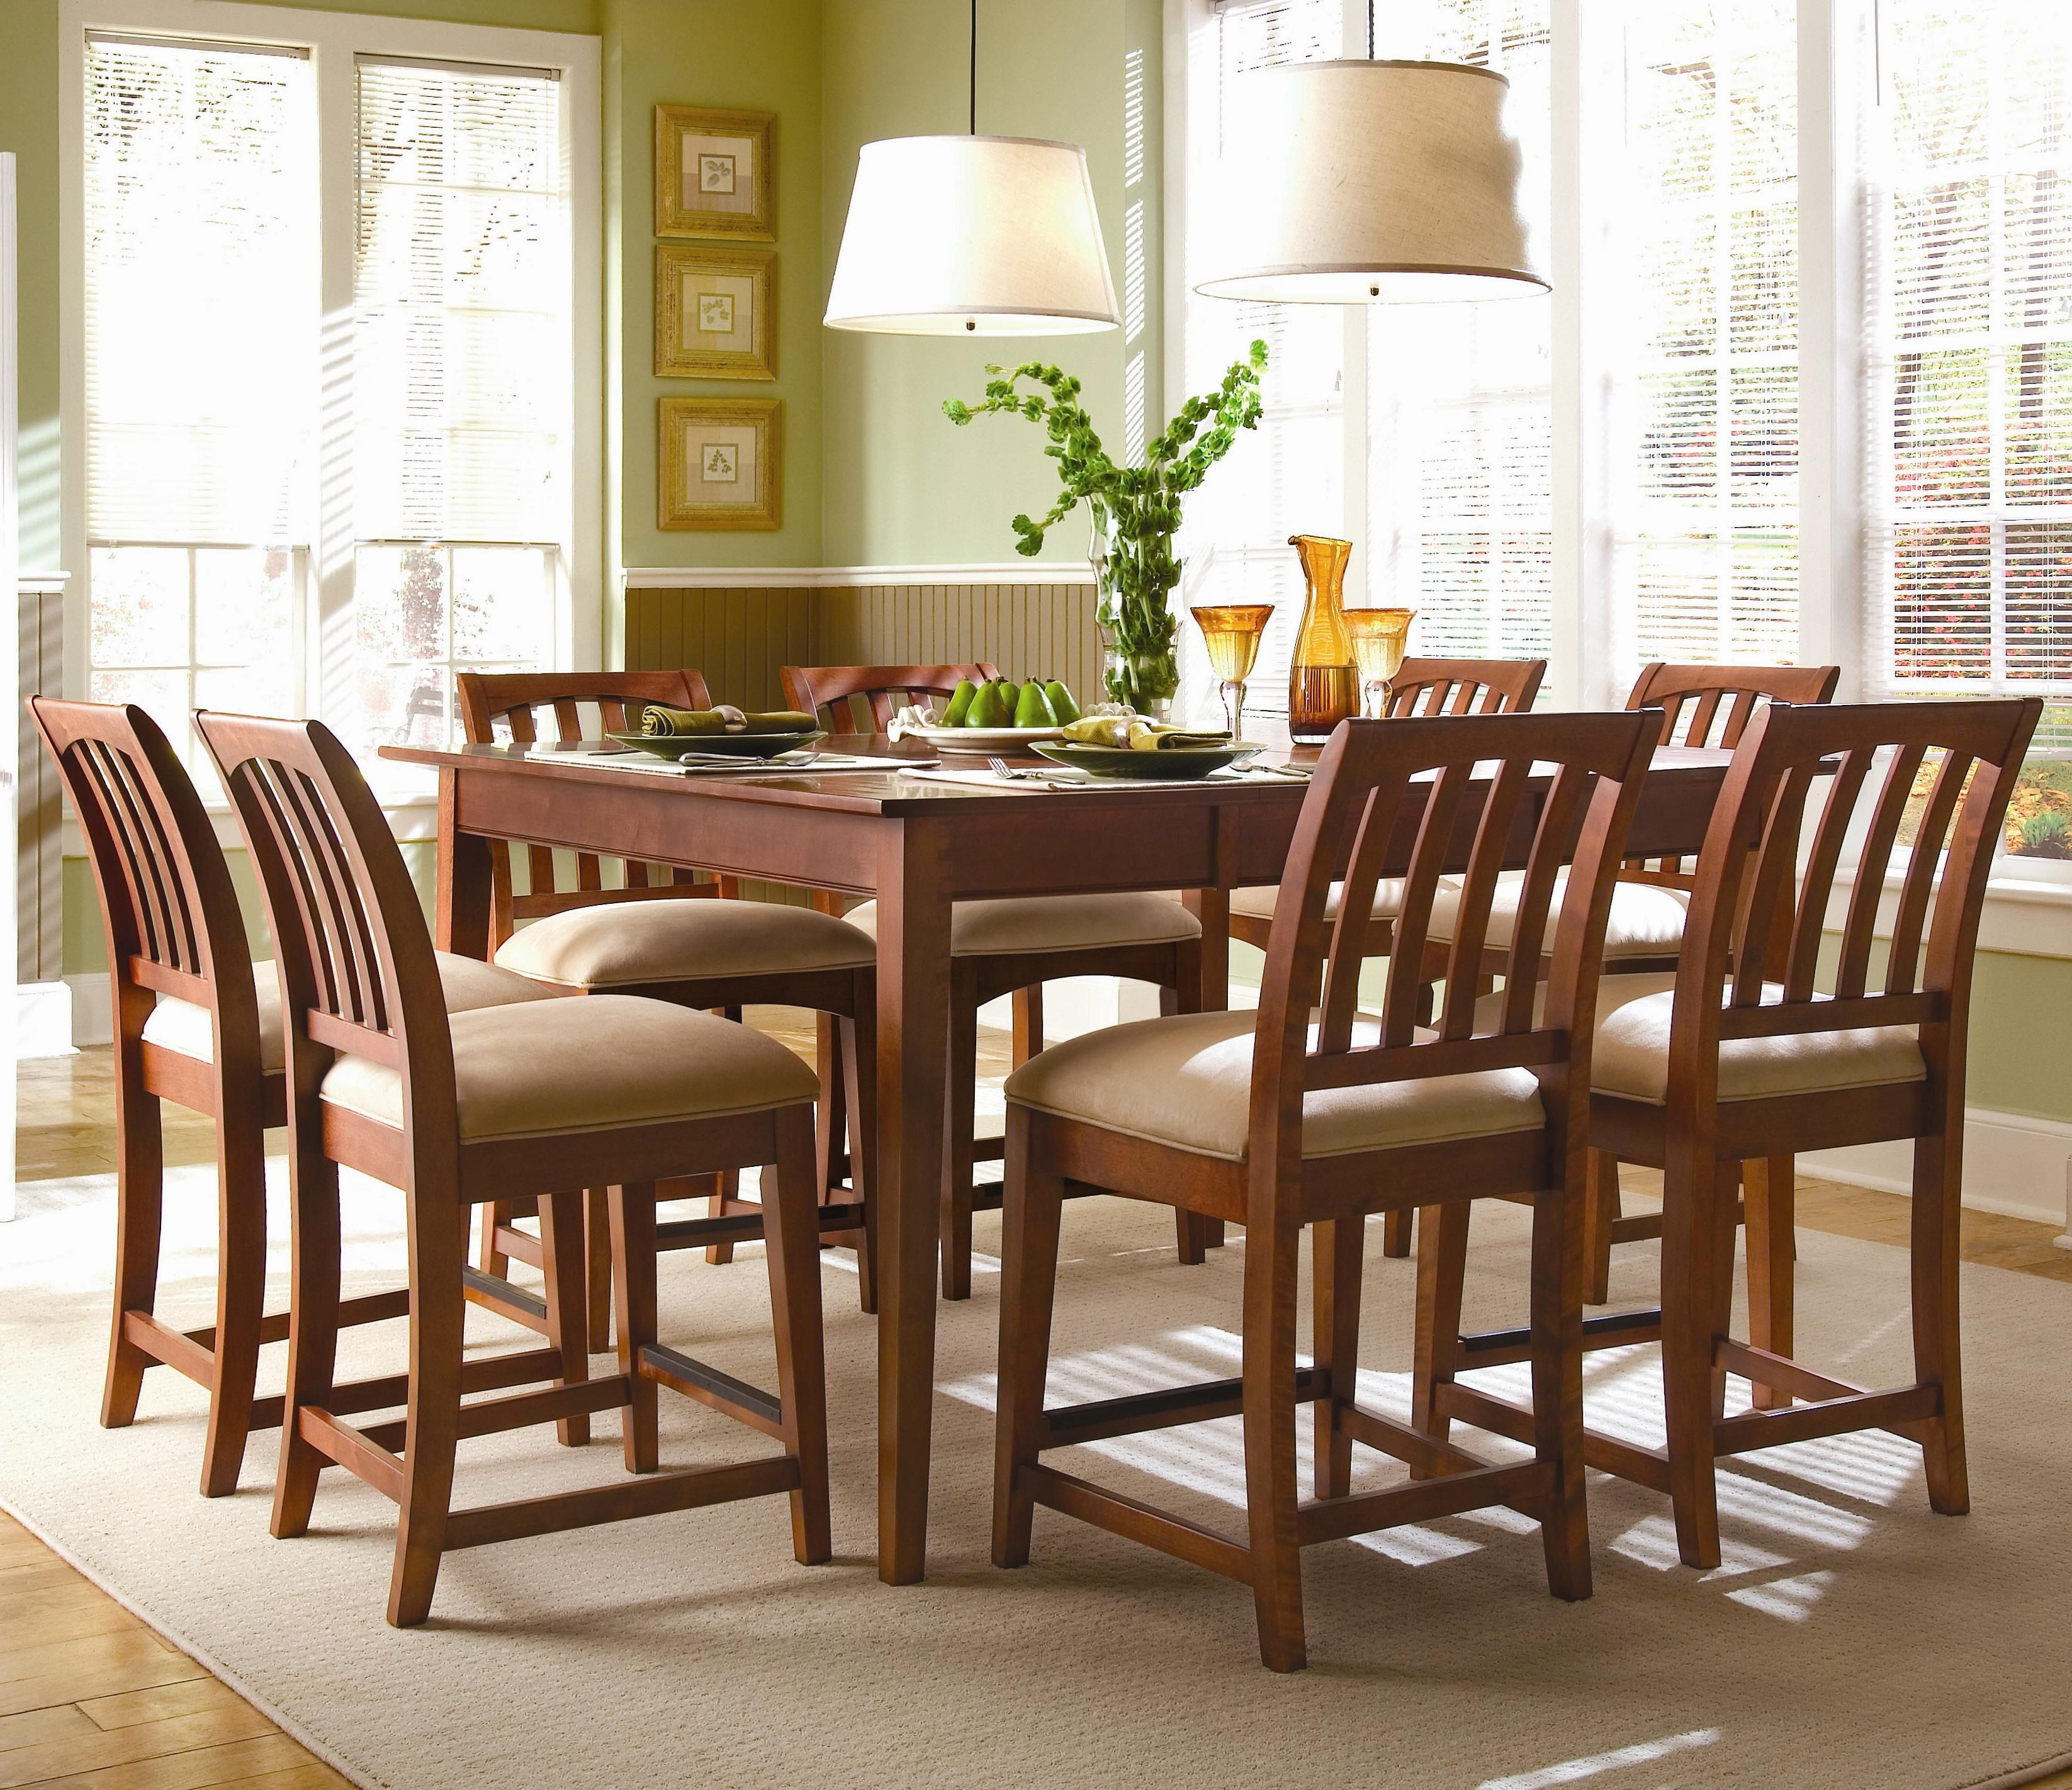 Gathering House 9-Piece Tall Dining Set By Kincaid